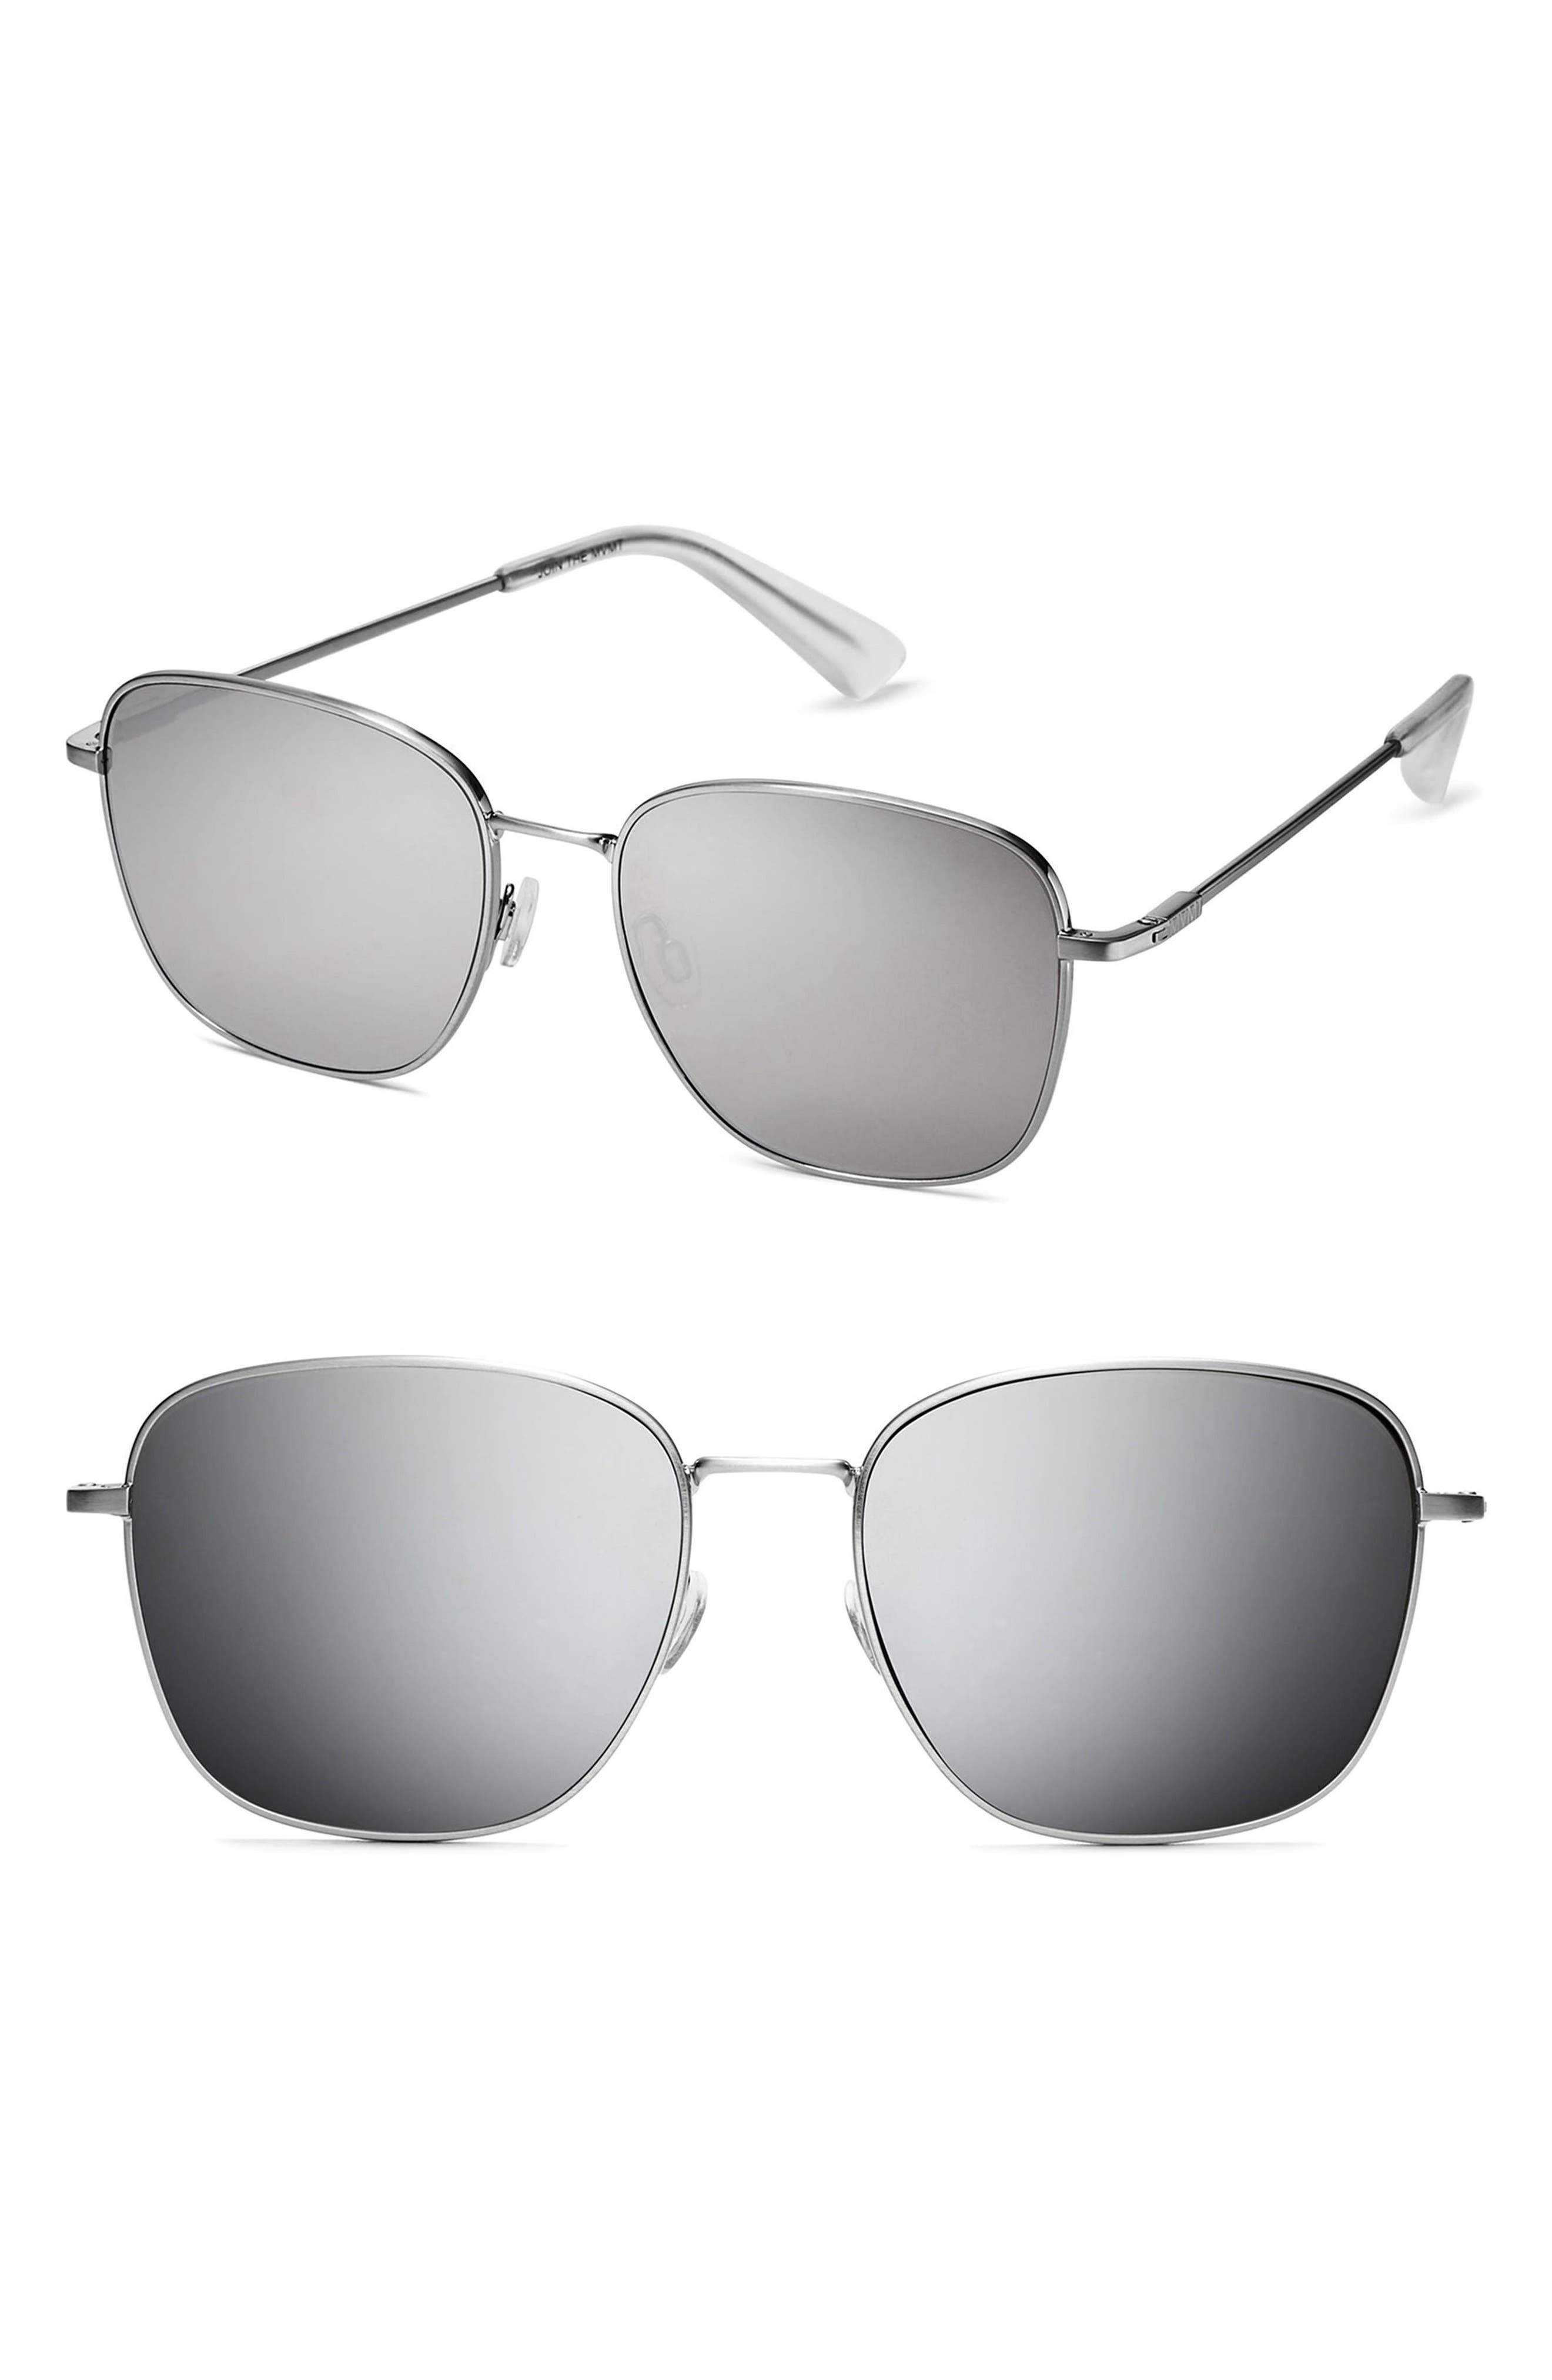 MVMT OUTLAW 57MM SUNGLASSES - SILVER MIRROR